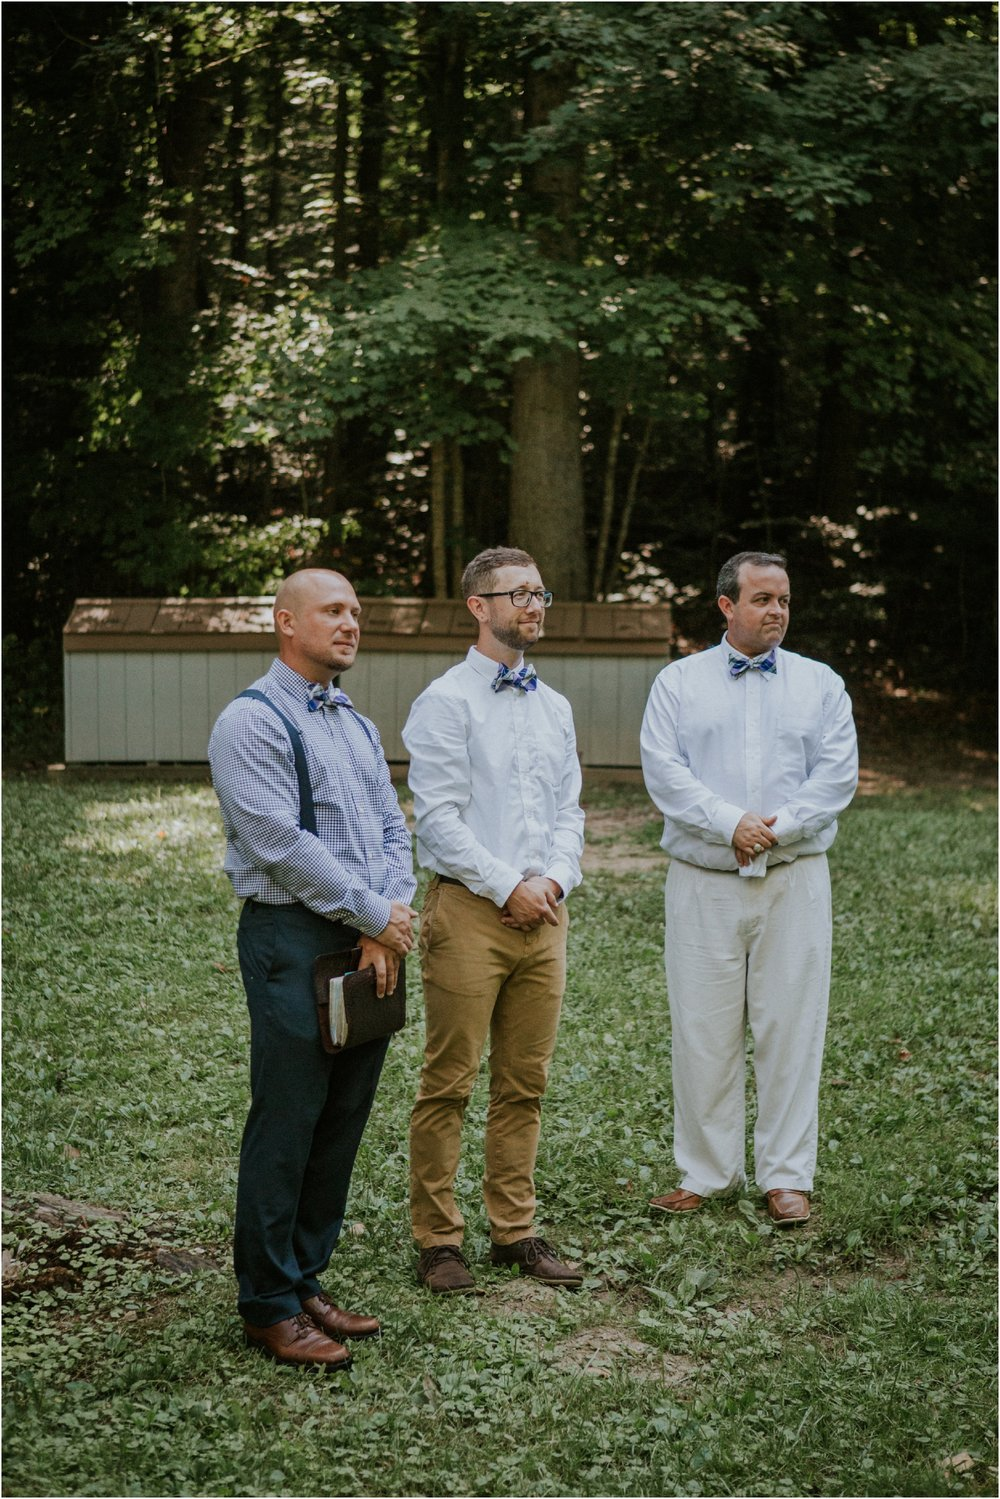 sugar-hollow-park-bristol-virginia-wedding-intimate-woodsy-black-forest-ceremony-adventurous-couple_0016.jpg